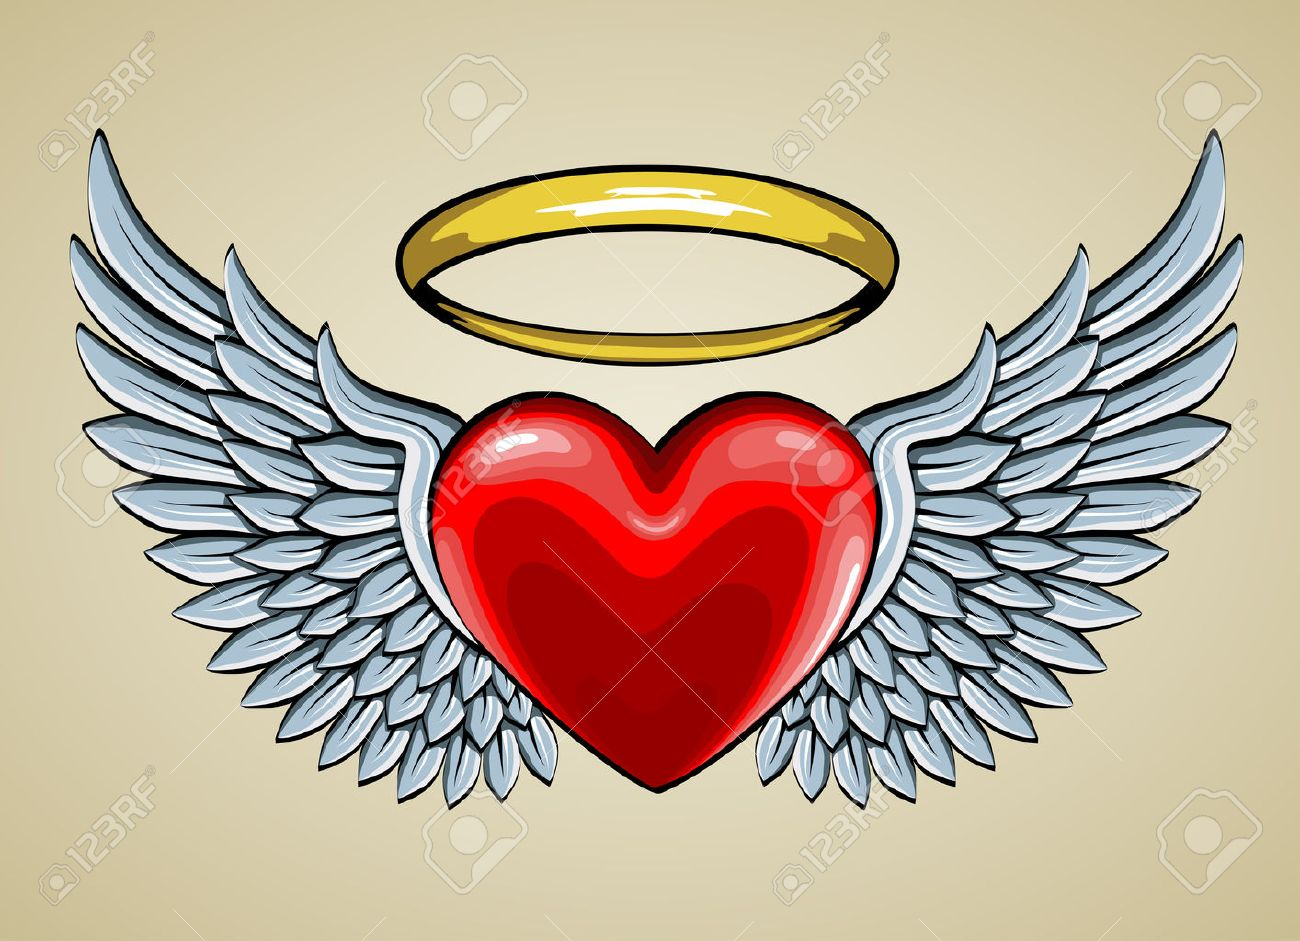 Red Heart With Angel Wings And Halo Royalty Free Cliparts Vectors